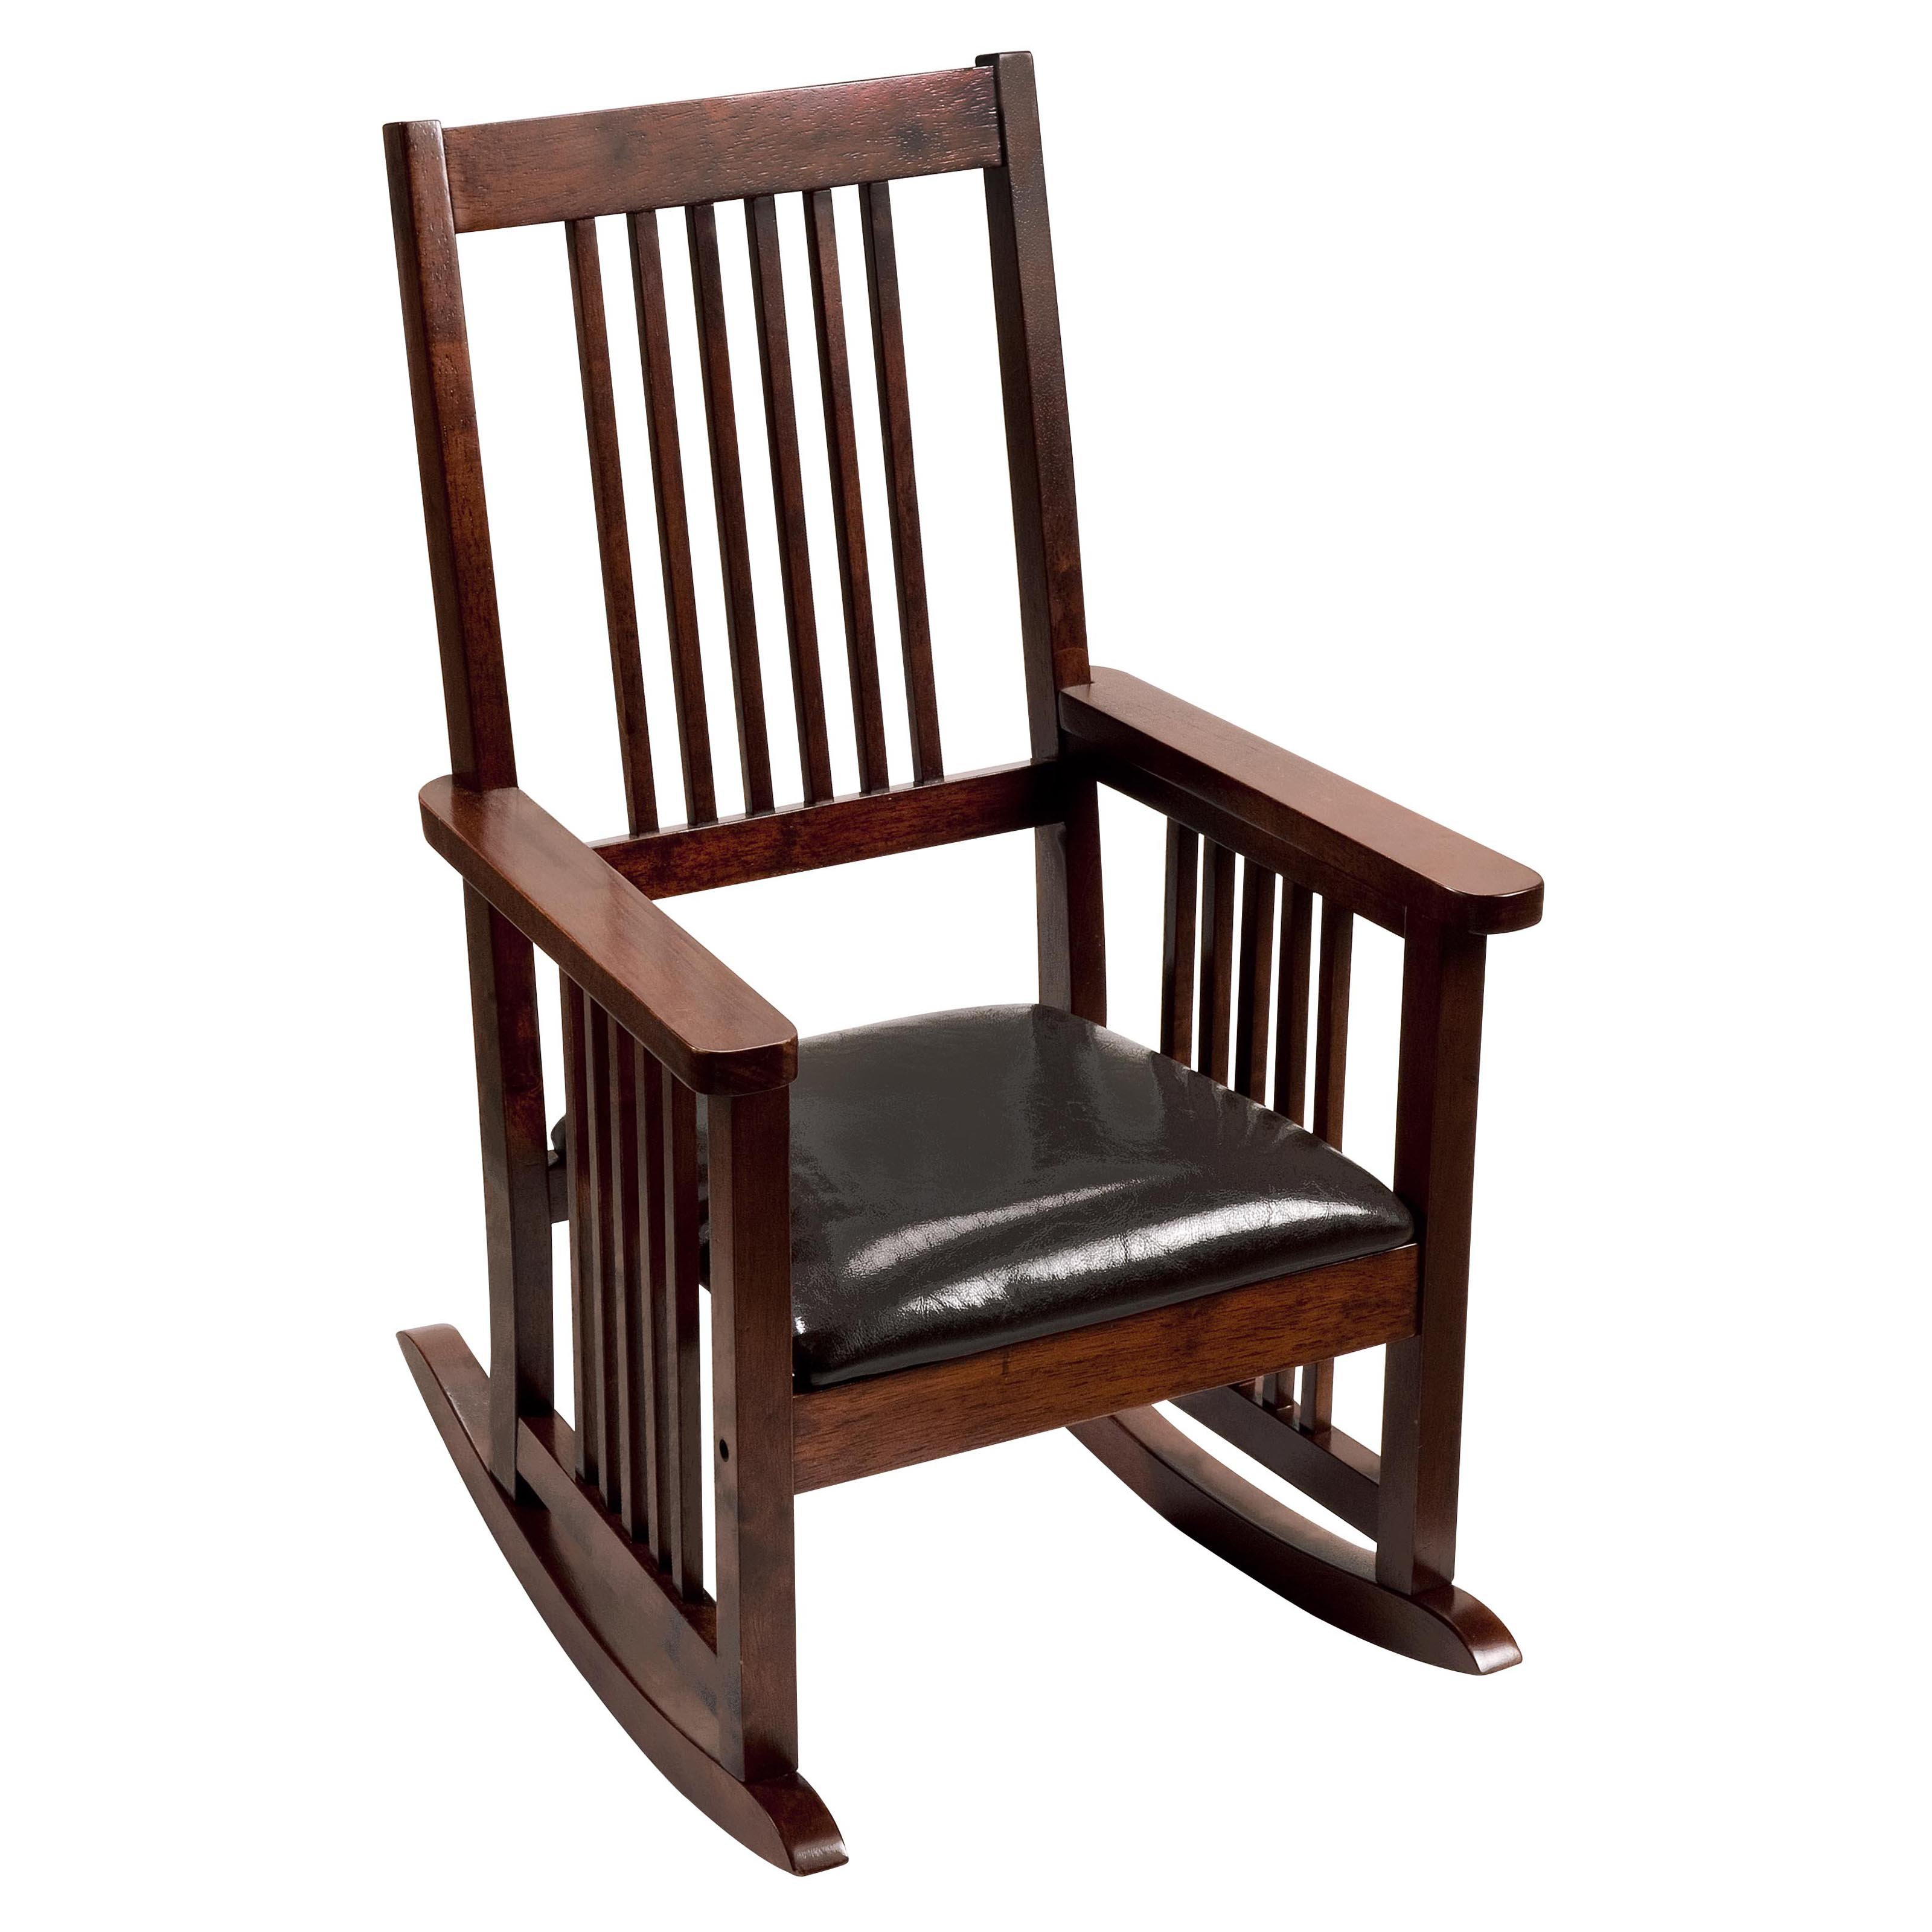 Mission Style Childrens Rocking Chair with Upholstered Seat by Gift Mark